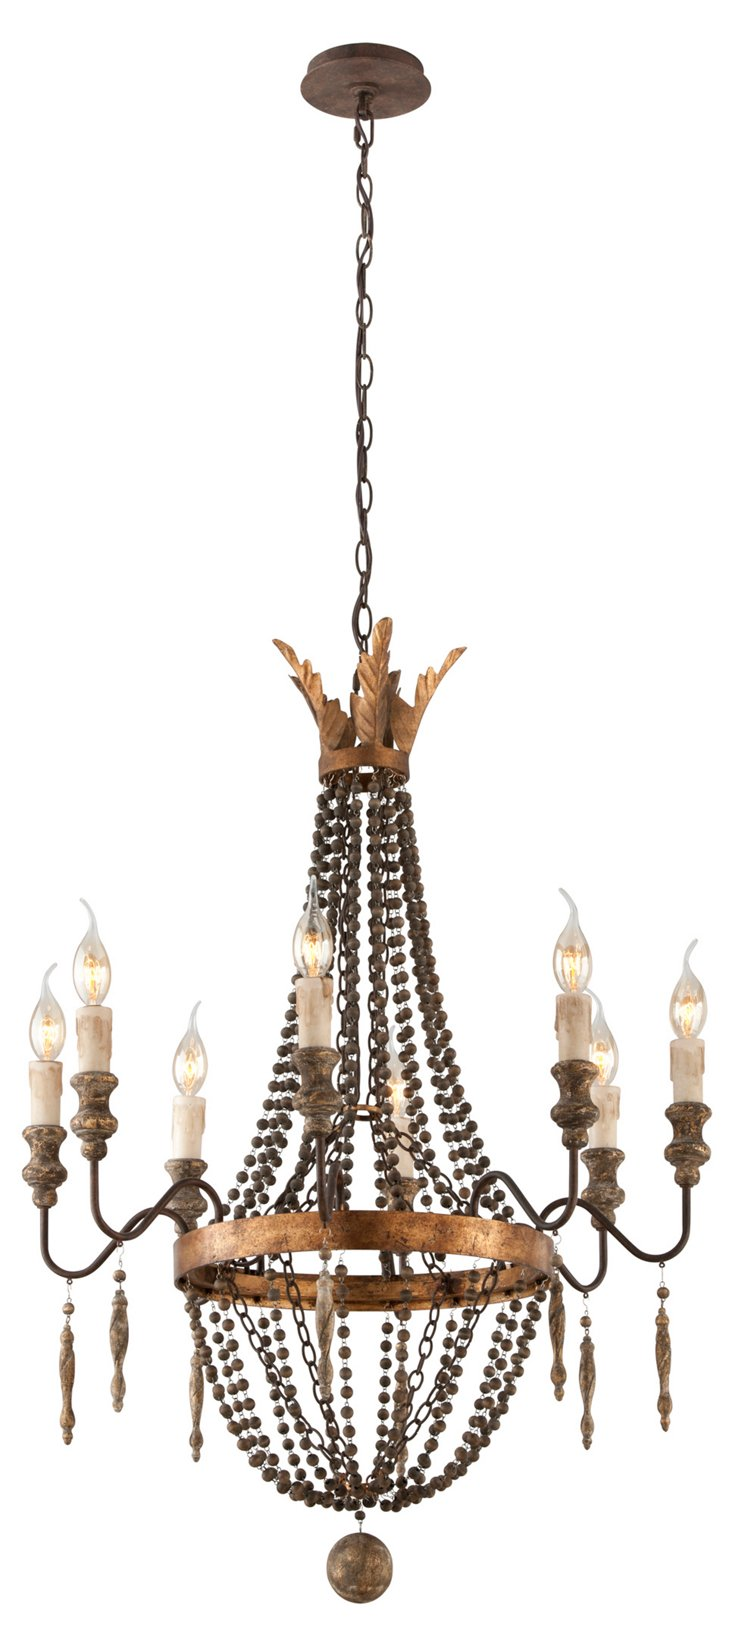 Delacroix 8-Light Chandelier, Bronze